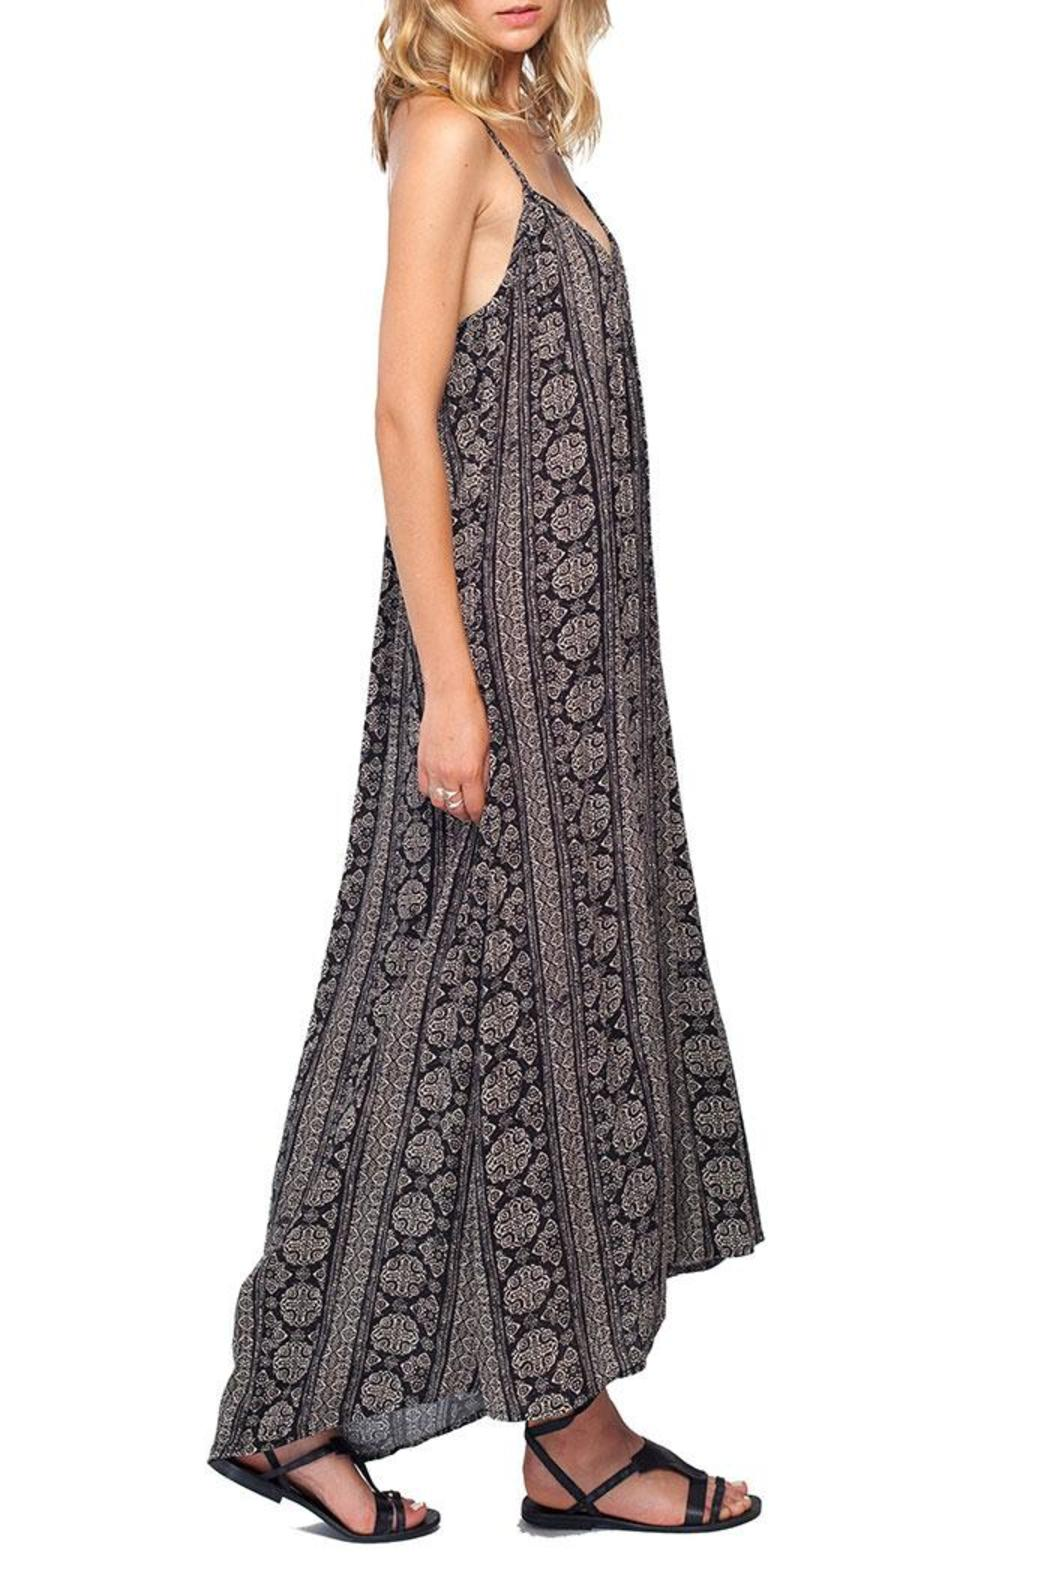 Gentle Fawn Mica Maxi Dress - Front Full Image